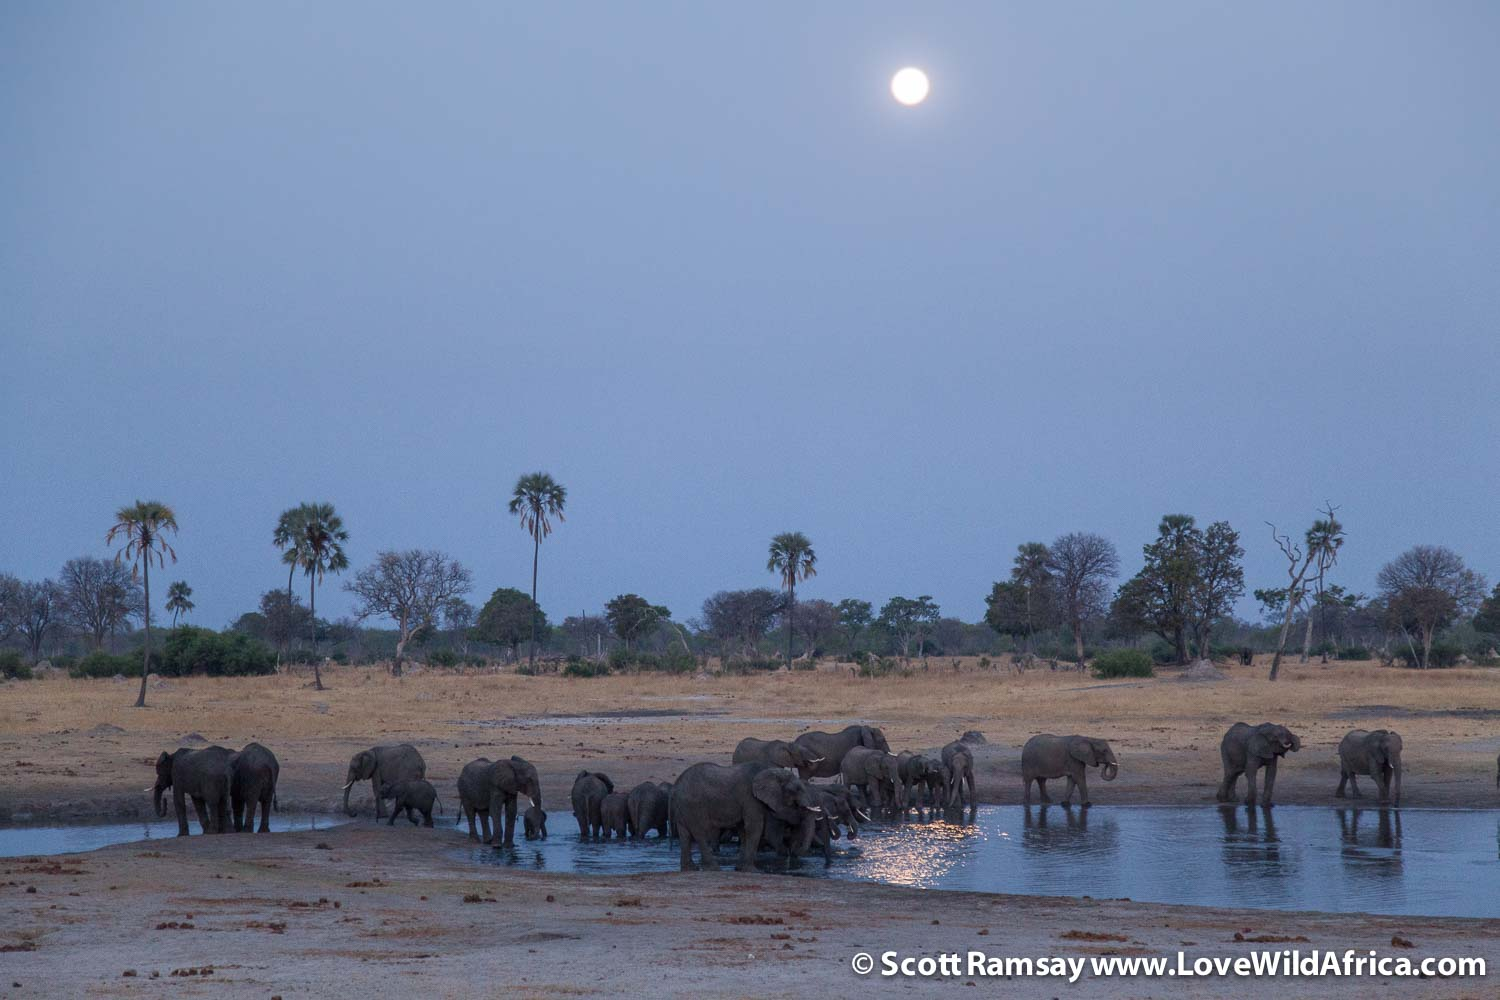 Watching the full moon rise over Hwange, as elephant herds drink from the pan...must rate as one of the finest experiences in Africa?